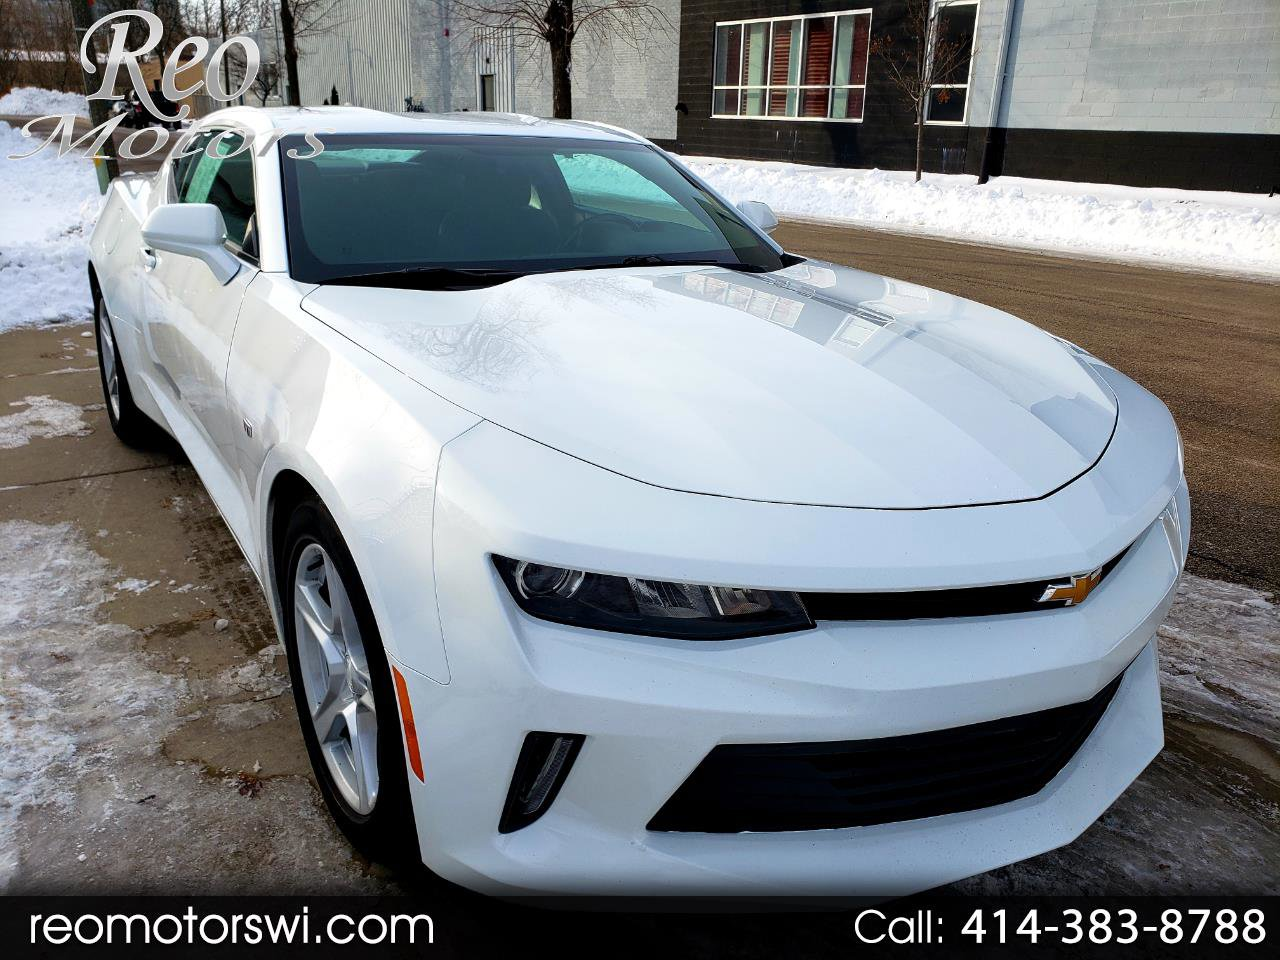 2016 Chevrolet Camaro LT Coupe w/ Technology Package image